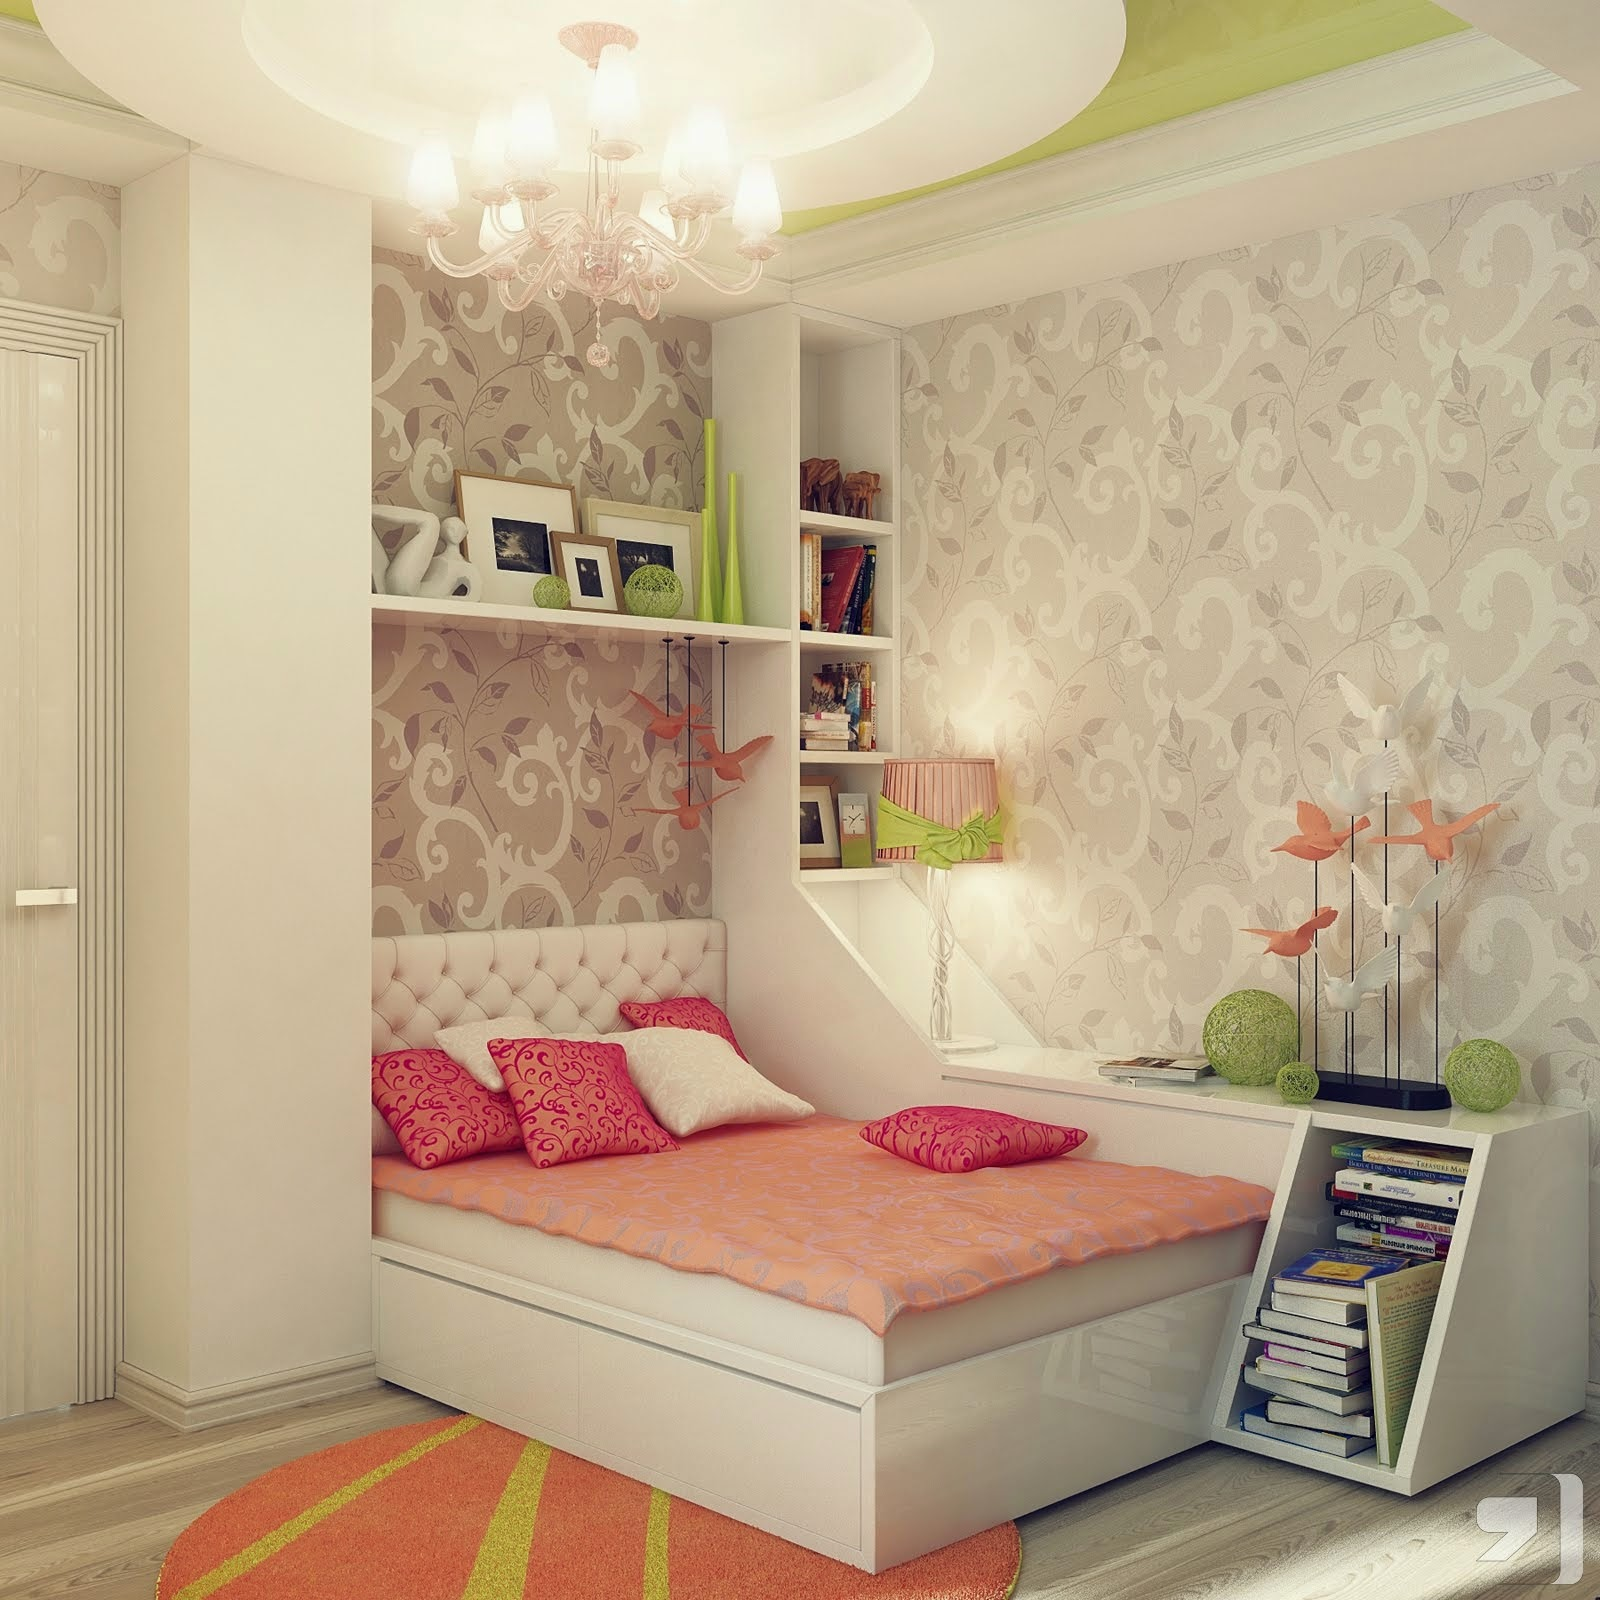 Ways To Make Your Bedroom Look Girly